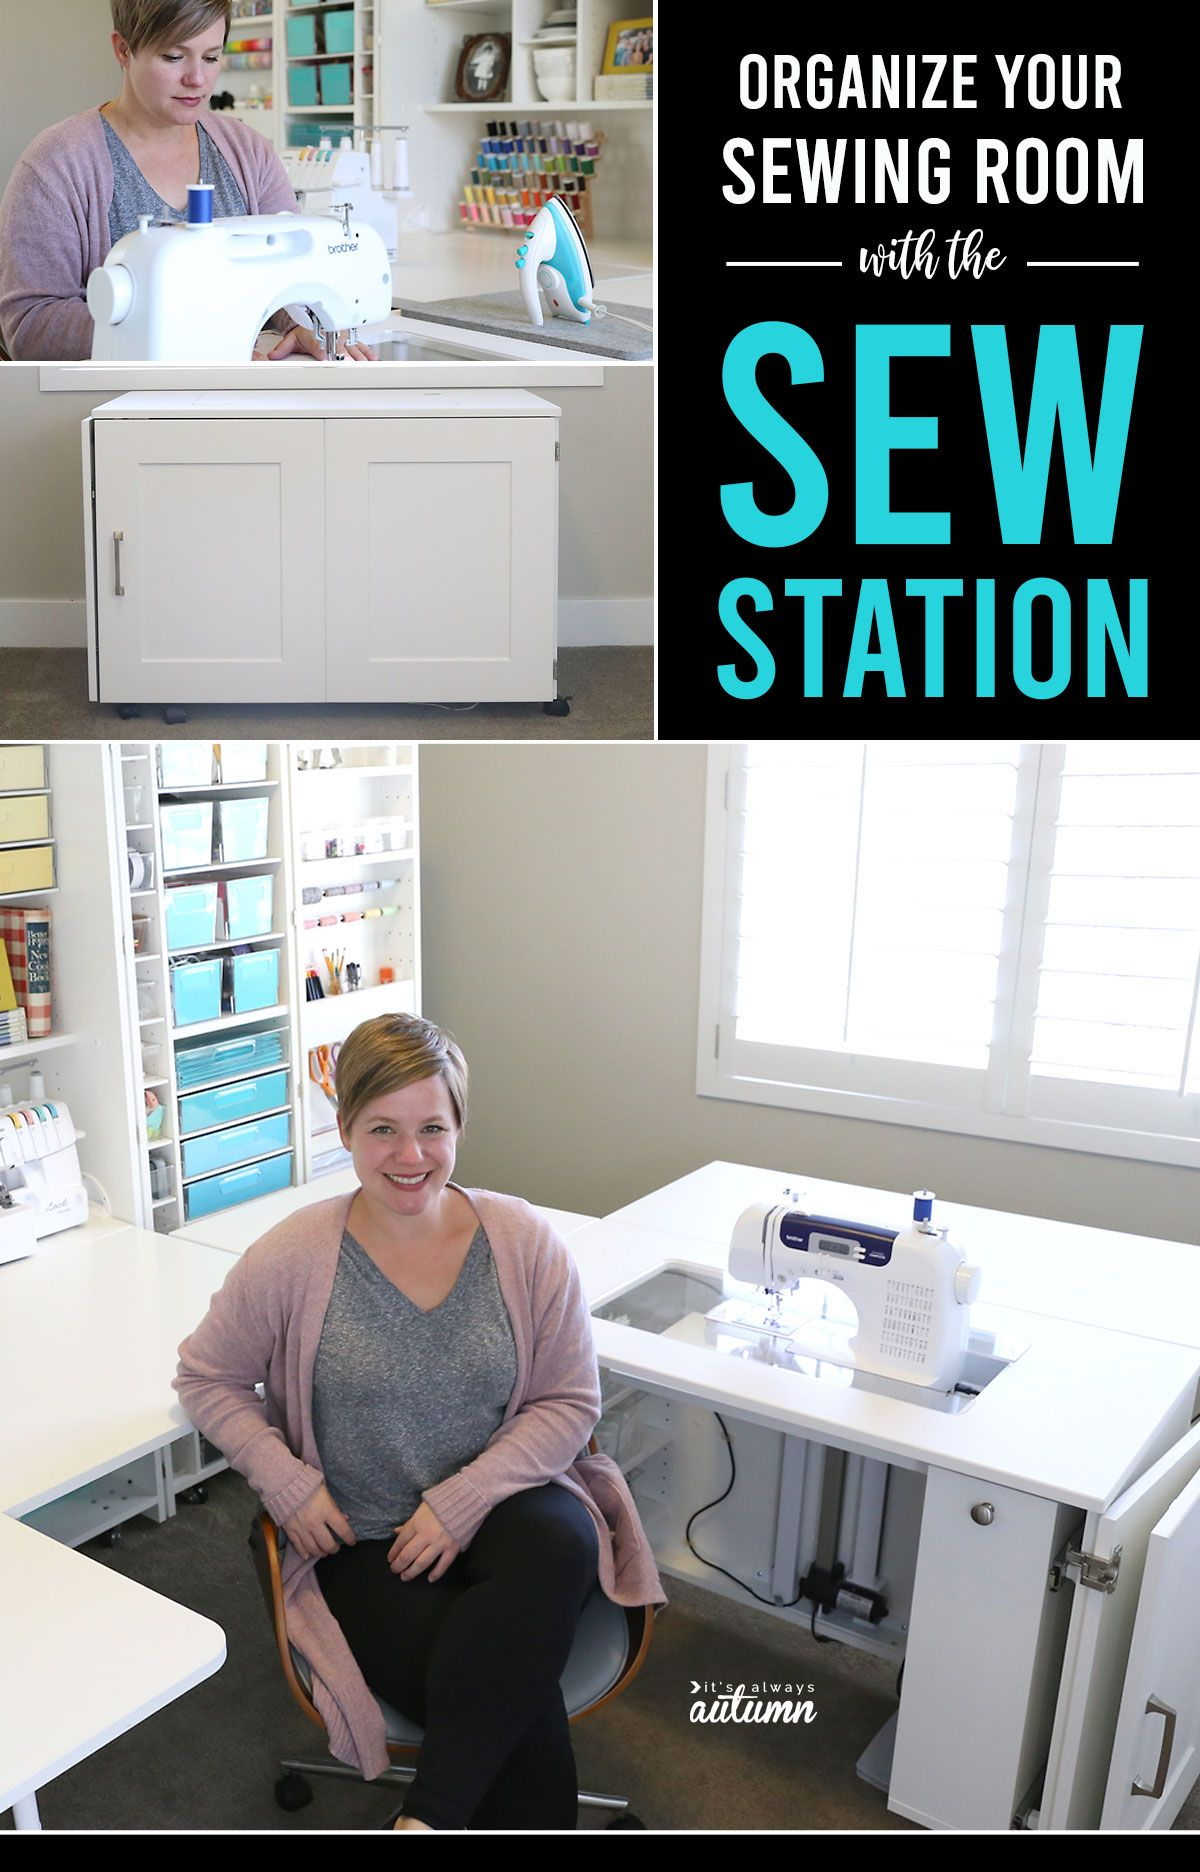 Organize your Sewing Room with the Sew Station + DreamBox